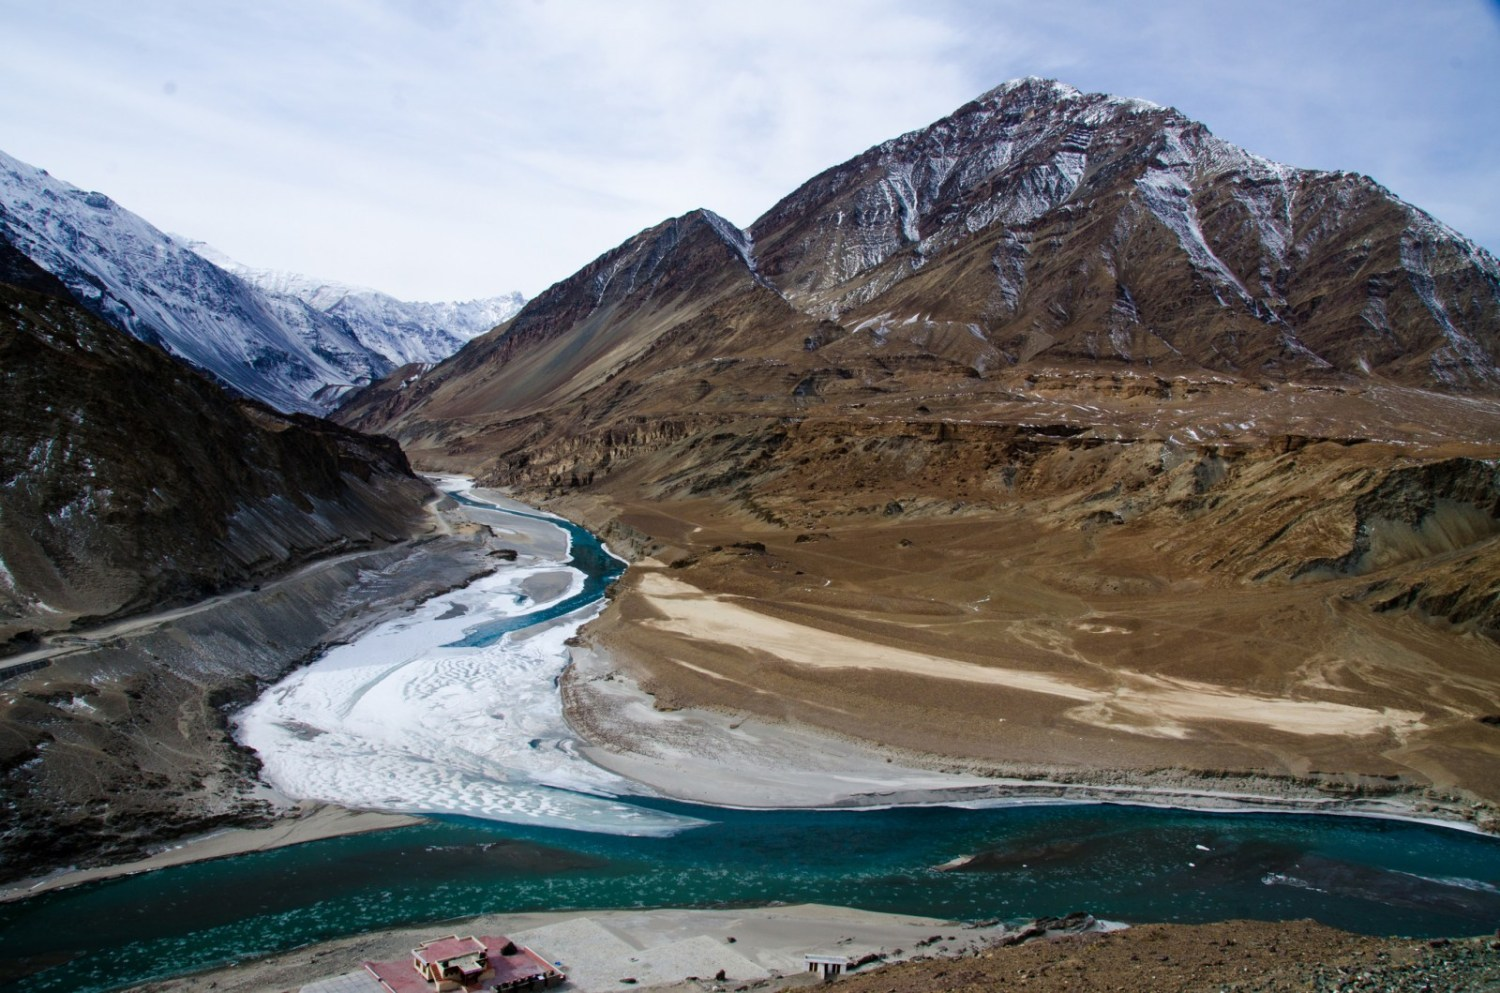 The Zanskar River joins the Indus River near Leh in Jammu and Kashmir. Though the Indus flows through India before reaching Pakistan, the 1960 Indus Water Treaty allocates the basin's three eastern rivers to India and its three western rivers to Pakistan. Photo courtesy Pradeep Kumbhashi via Flickr Creative Commons